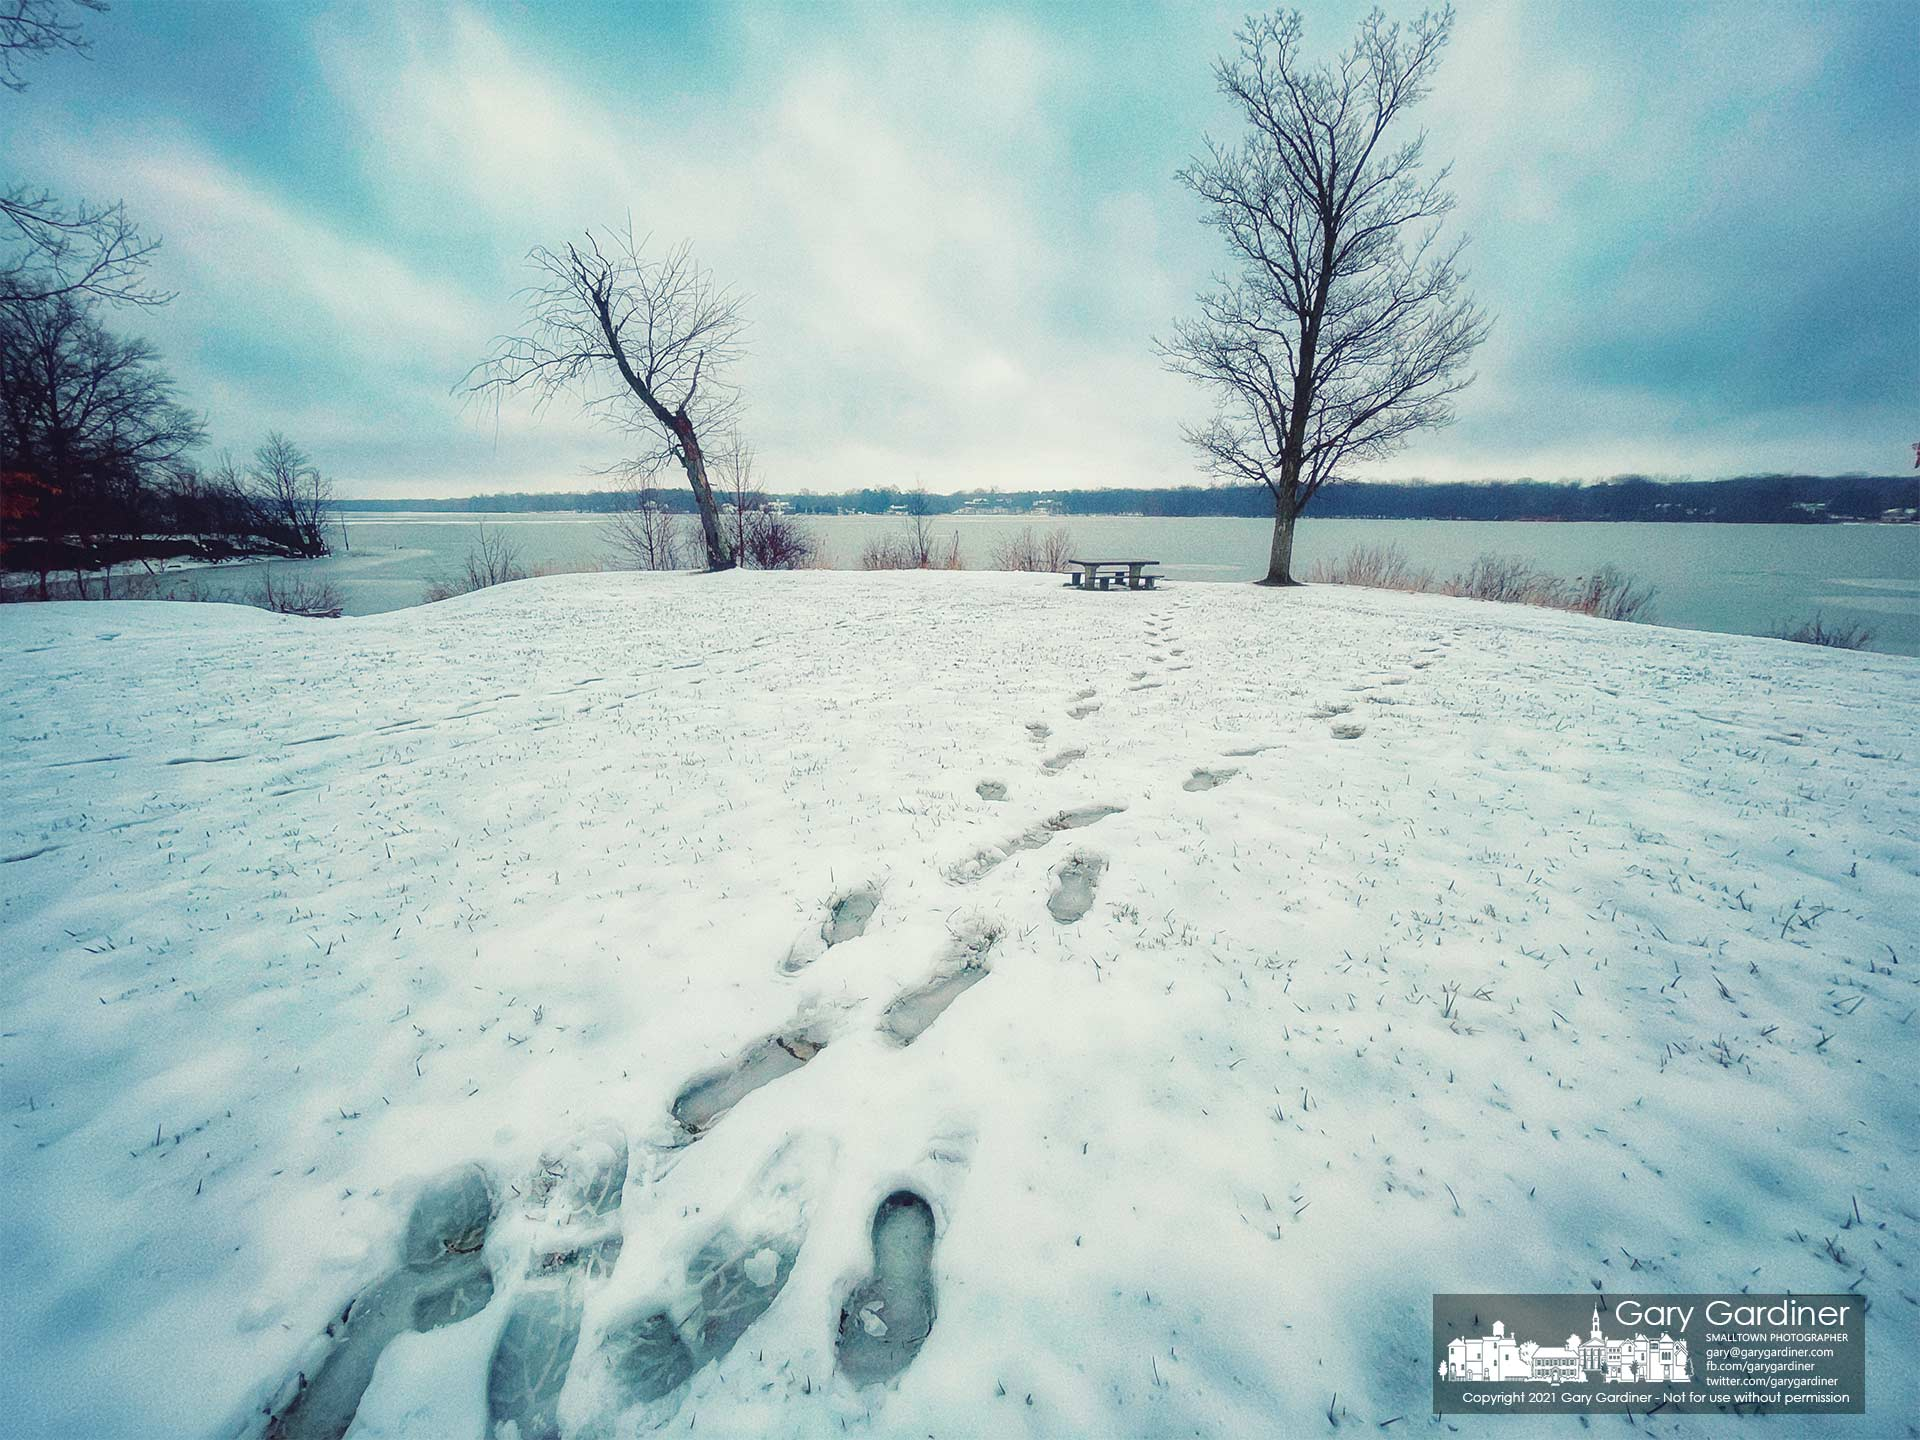 A set of footprints in the fresh snow leads to and from the shoreline at Hoover Reservoir. My Final Photo for Jan. 31, 2021.